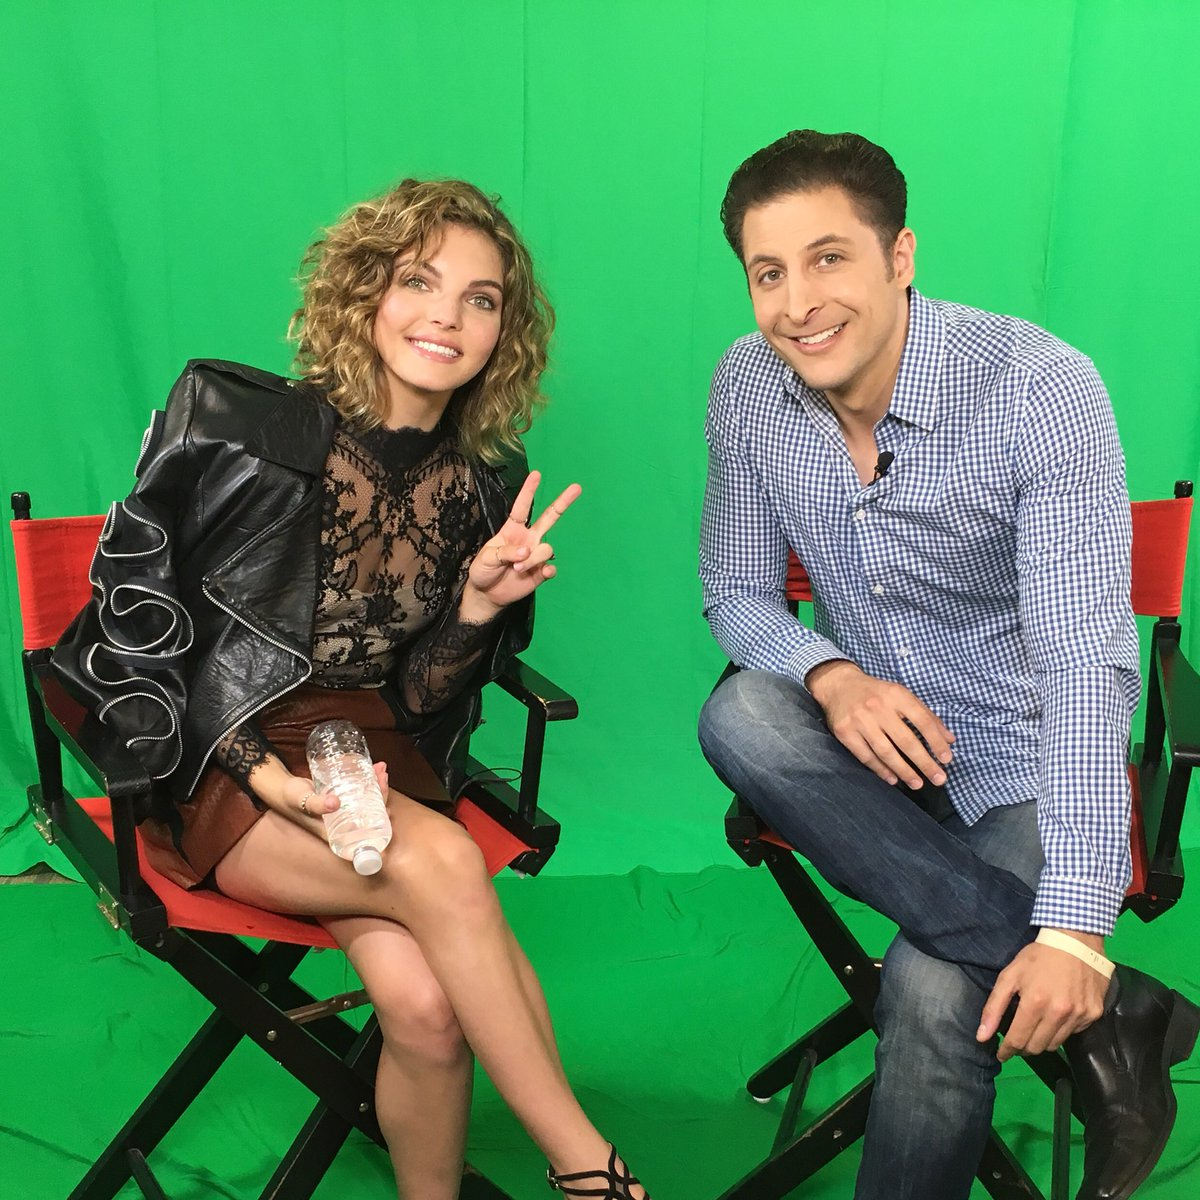 Just me and #CatWoman :)   Fun w/ @CamrenBicondova AKA #SelenaKyle on FOX's #Gotham talking about the new season. https://t.co/dtntCqwWpu